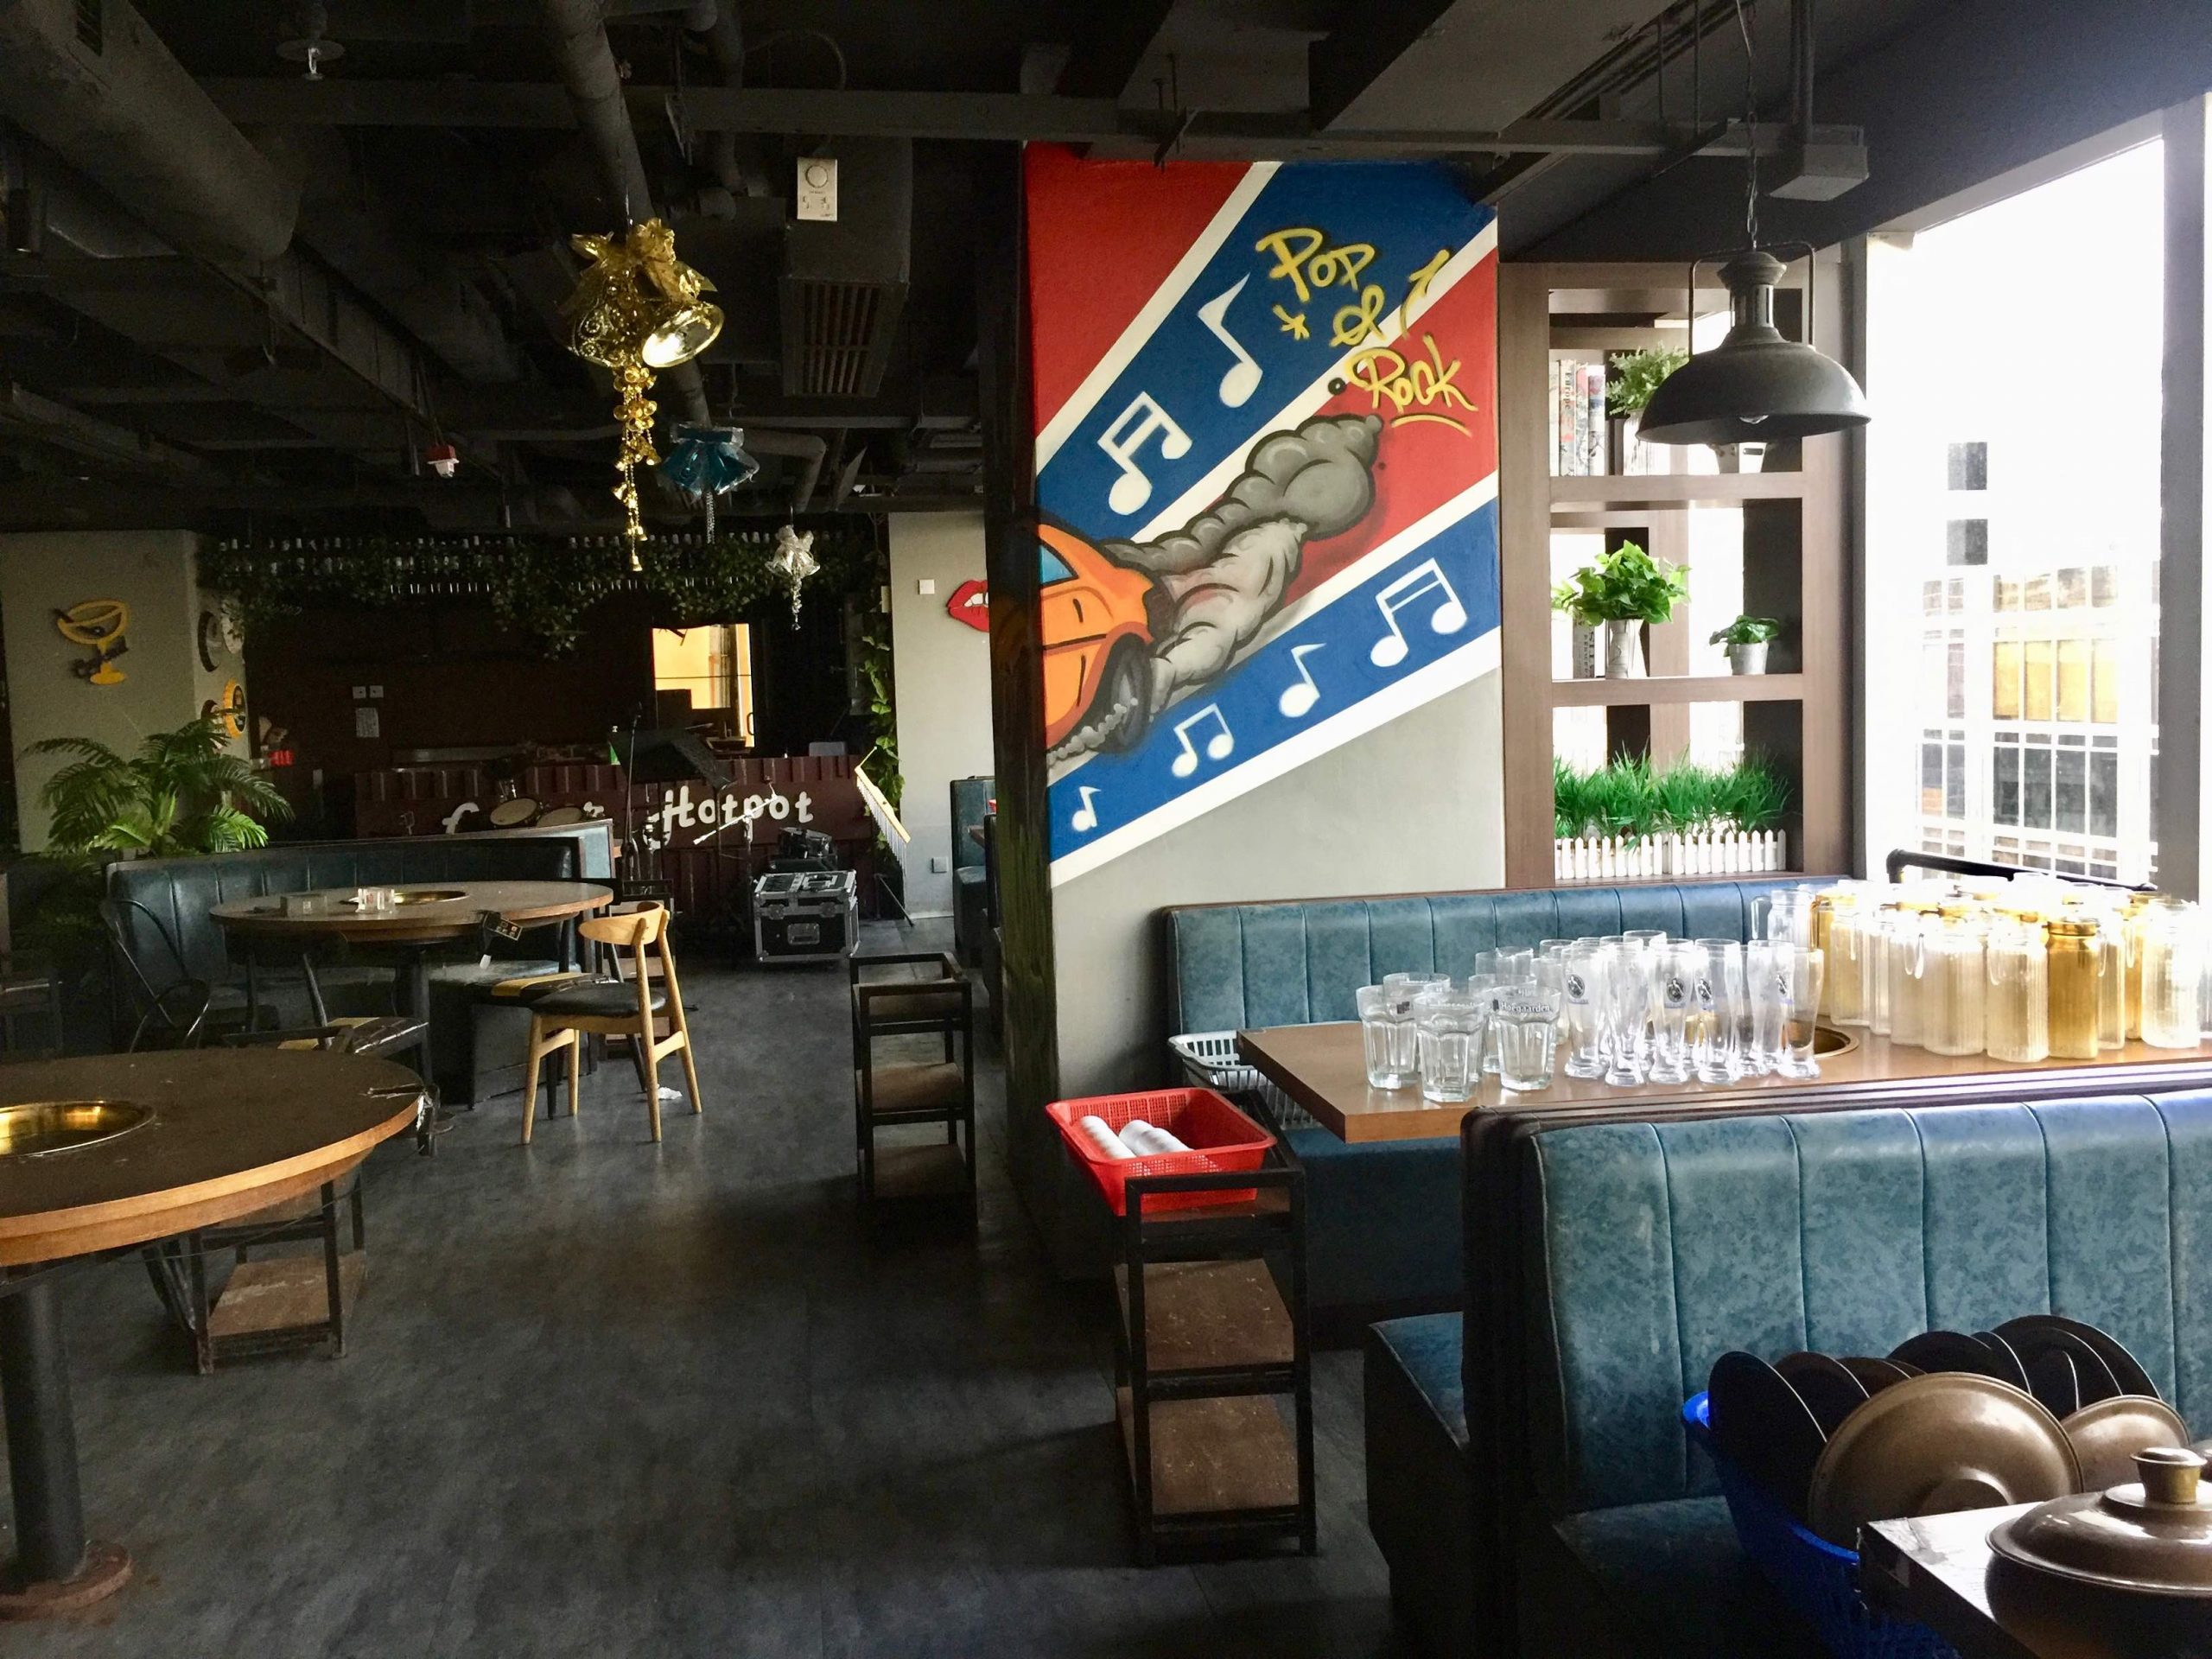 Fitted Hotpot Restaurant space for rent in Kowloon HK